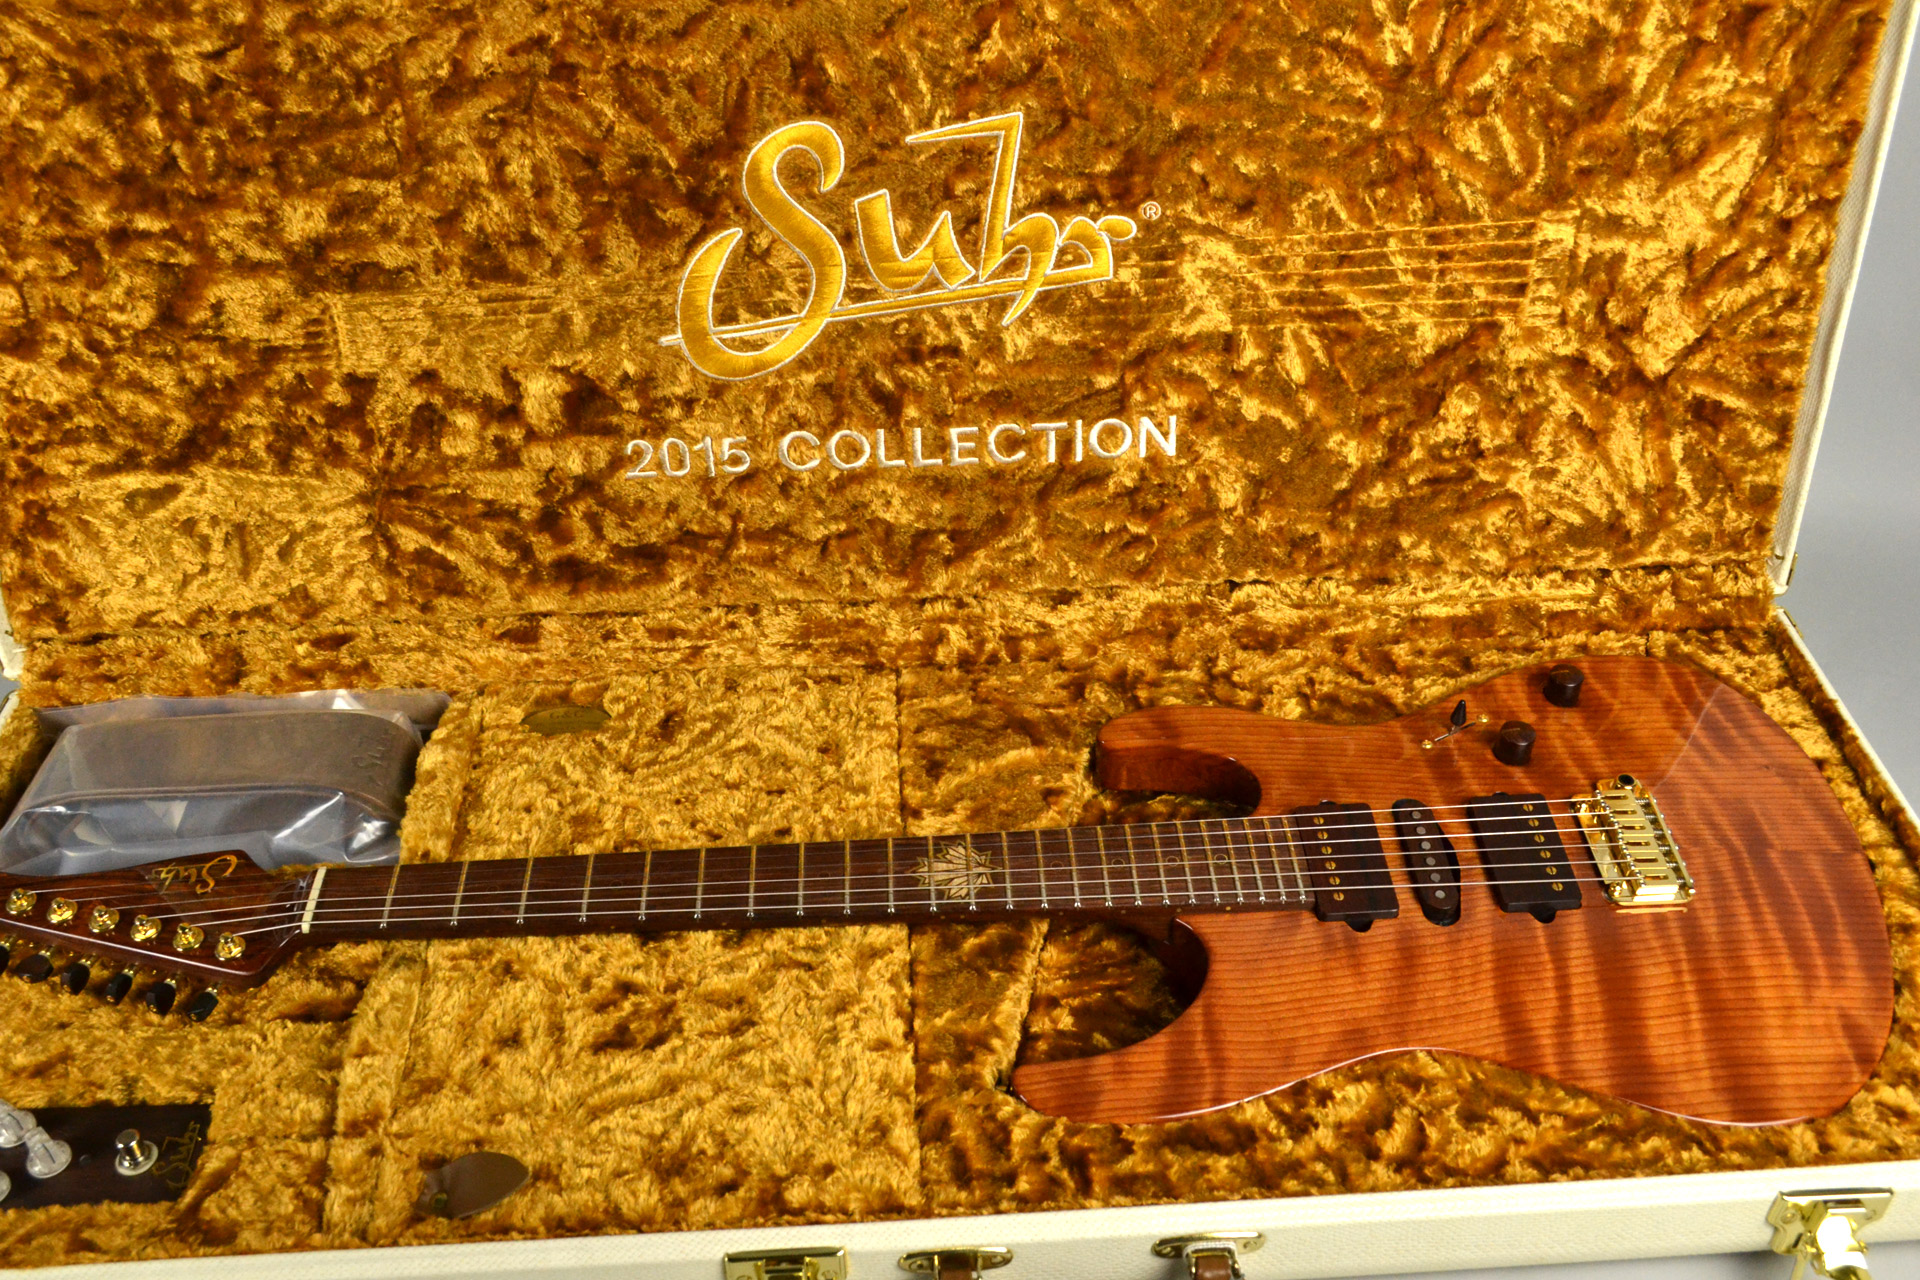 Modern Carved Top Redwood 2015 Collection Limitedの全体画像(縦)